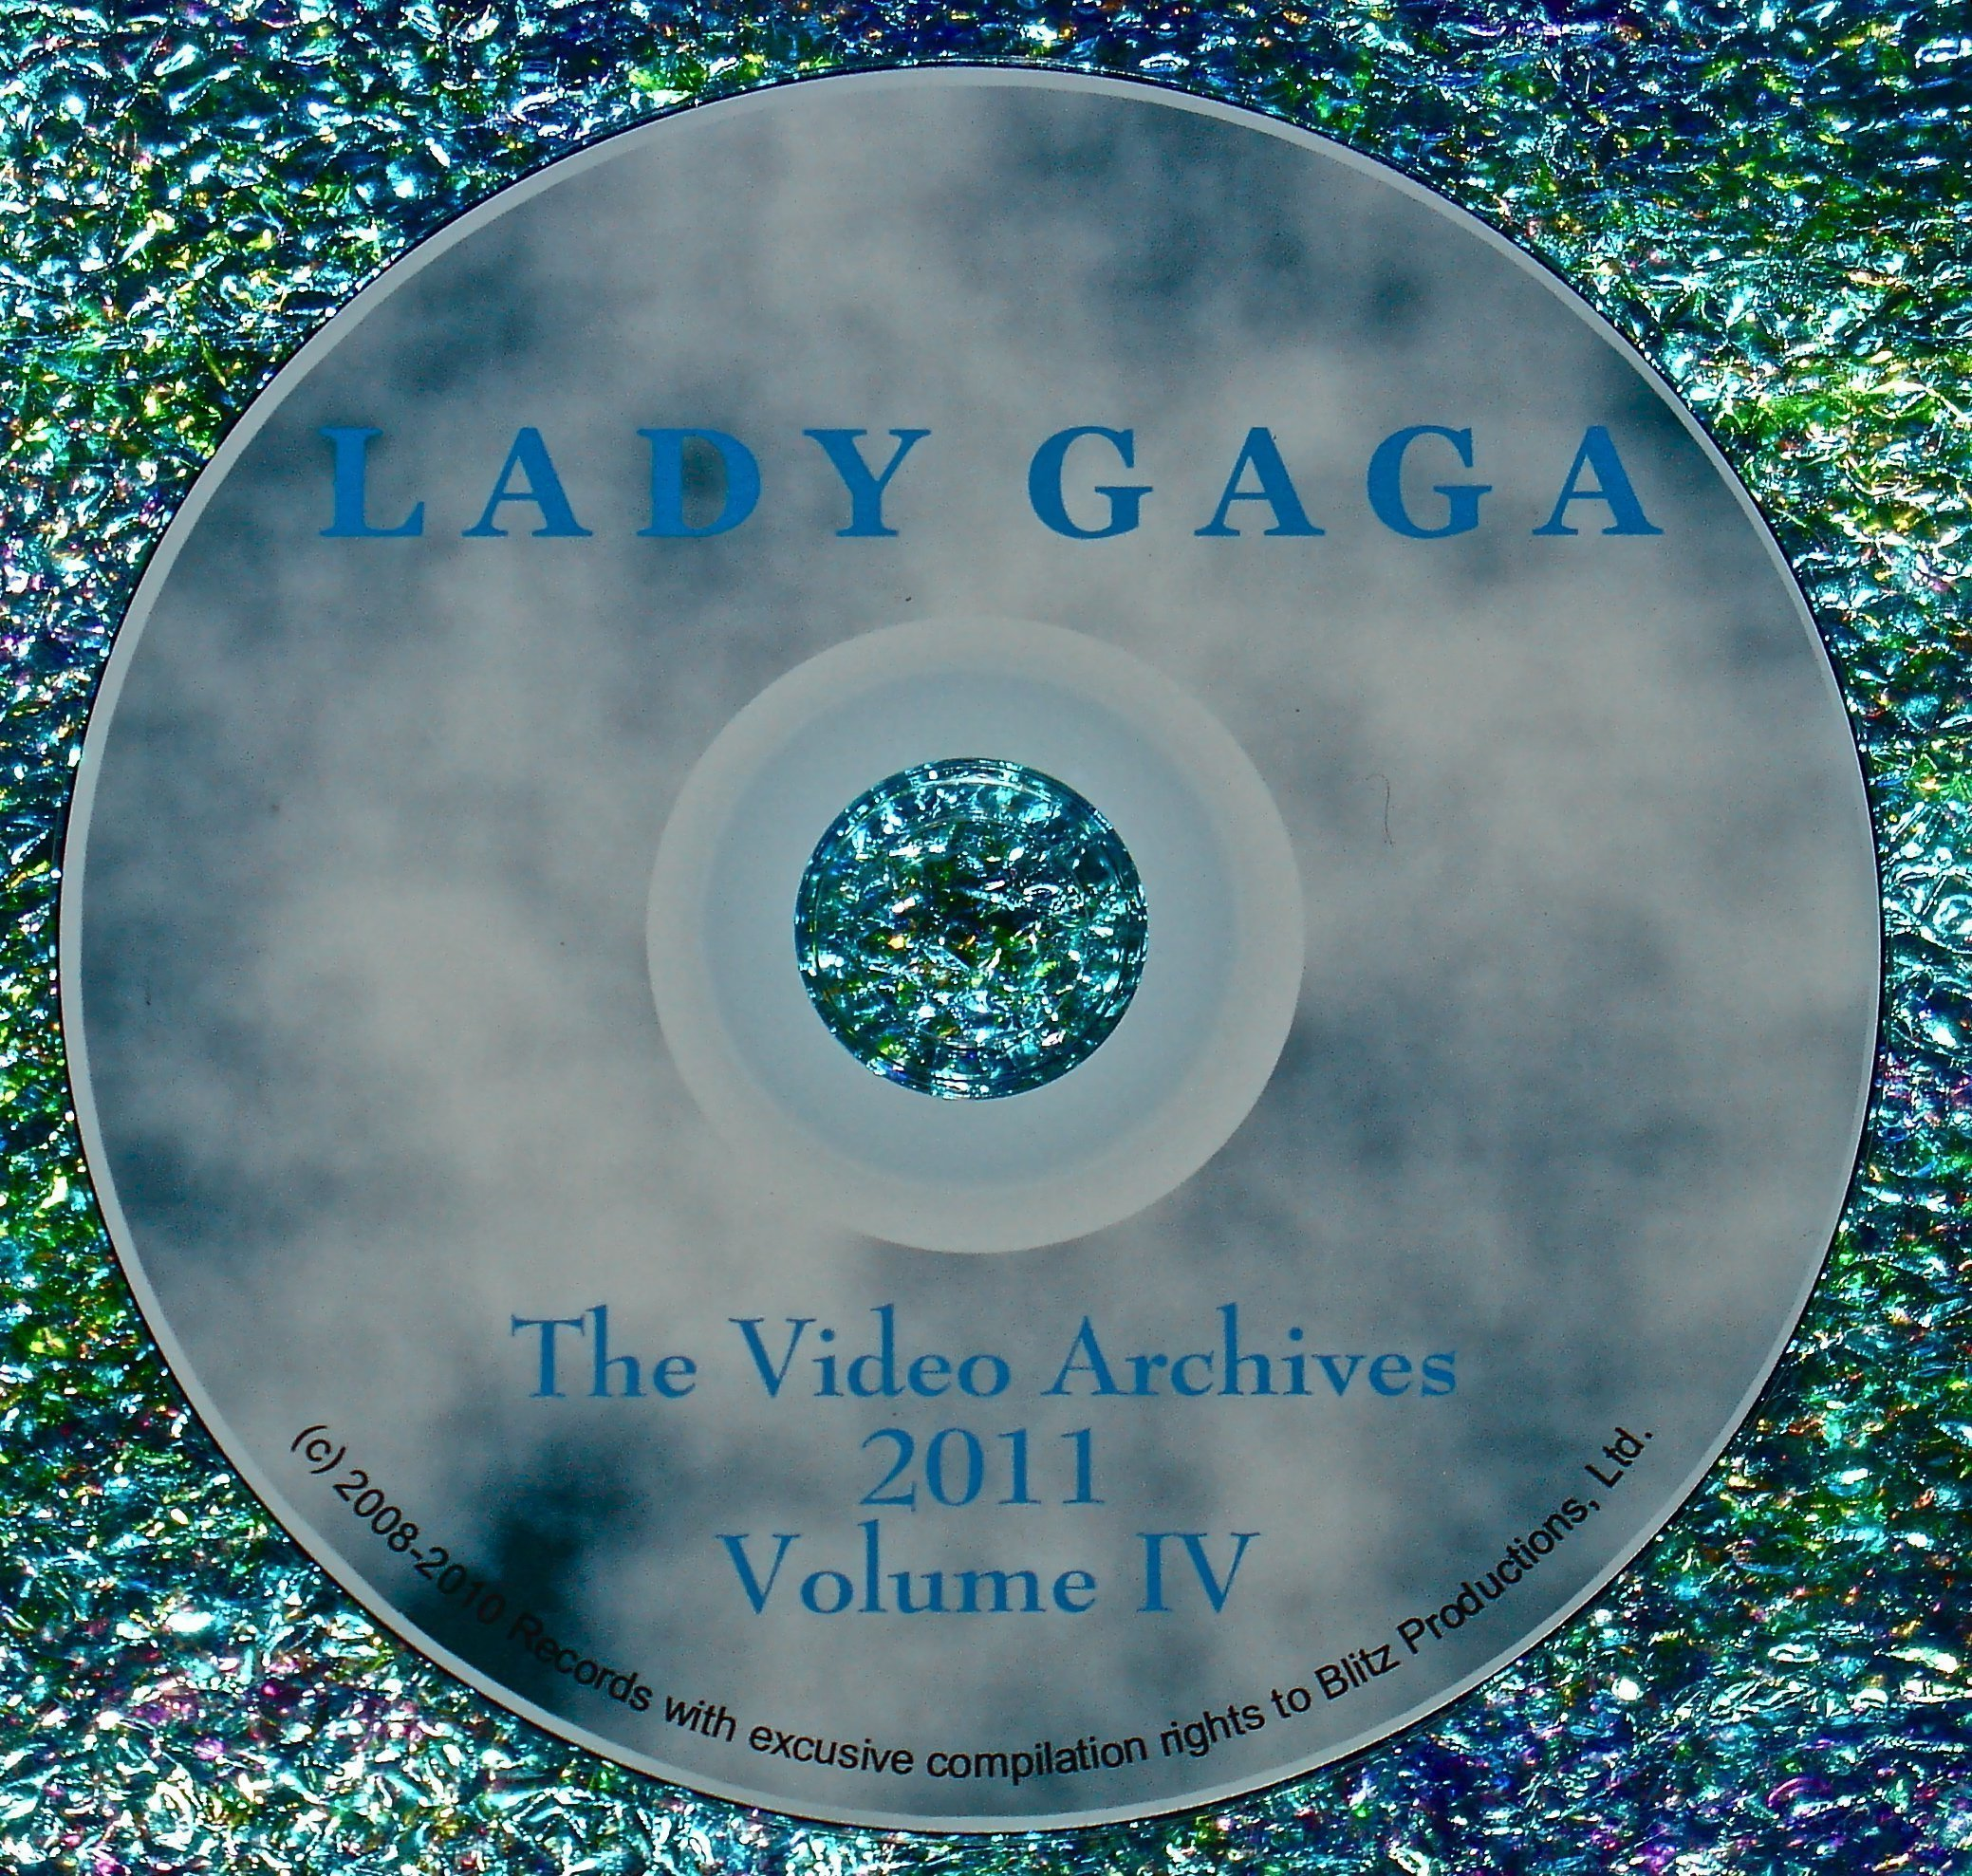 Lady GaGa The Video Archives (for the year 2011) Volume IV